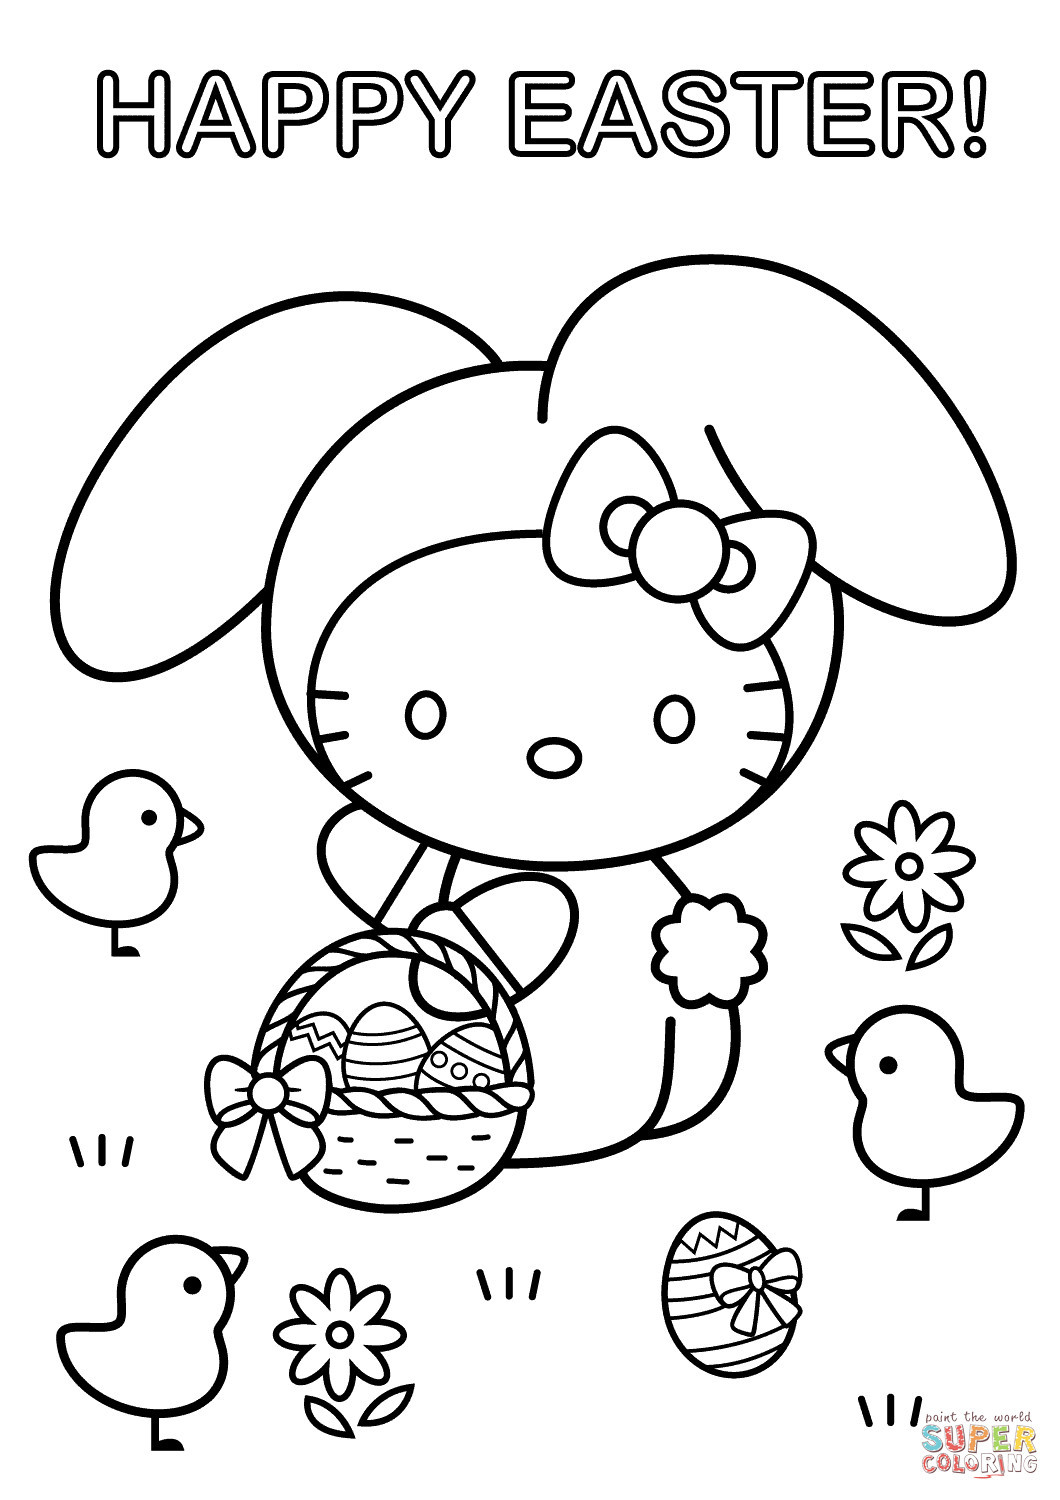 Ausmalbilder Weihnachten Supercoloring Genial Hello Kitty Easter Coloring Pages Printable Beautiful 25 Fotos